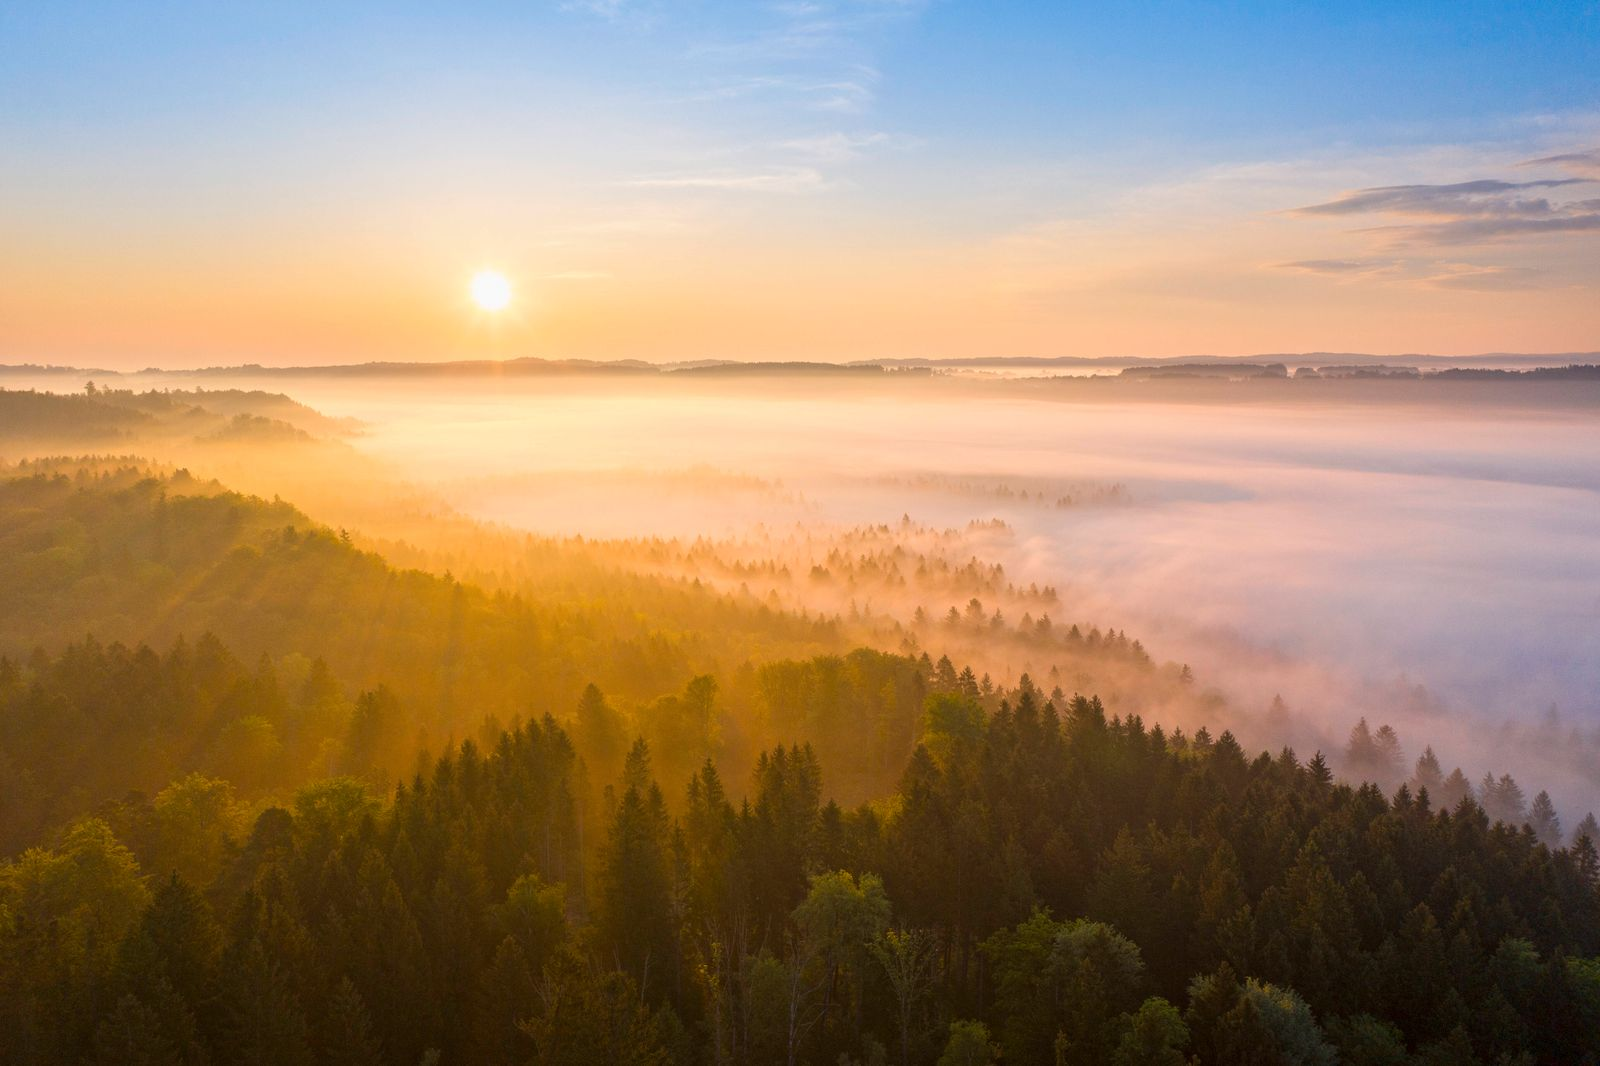 Germany, Bavaria, Icking, Drone view of countryside forest at foggy sunrise SIEF09908